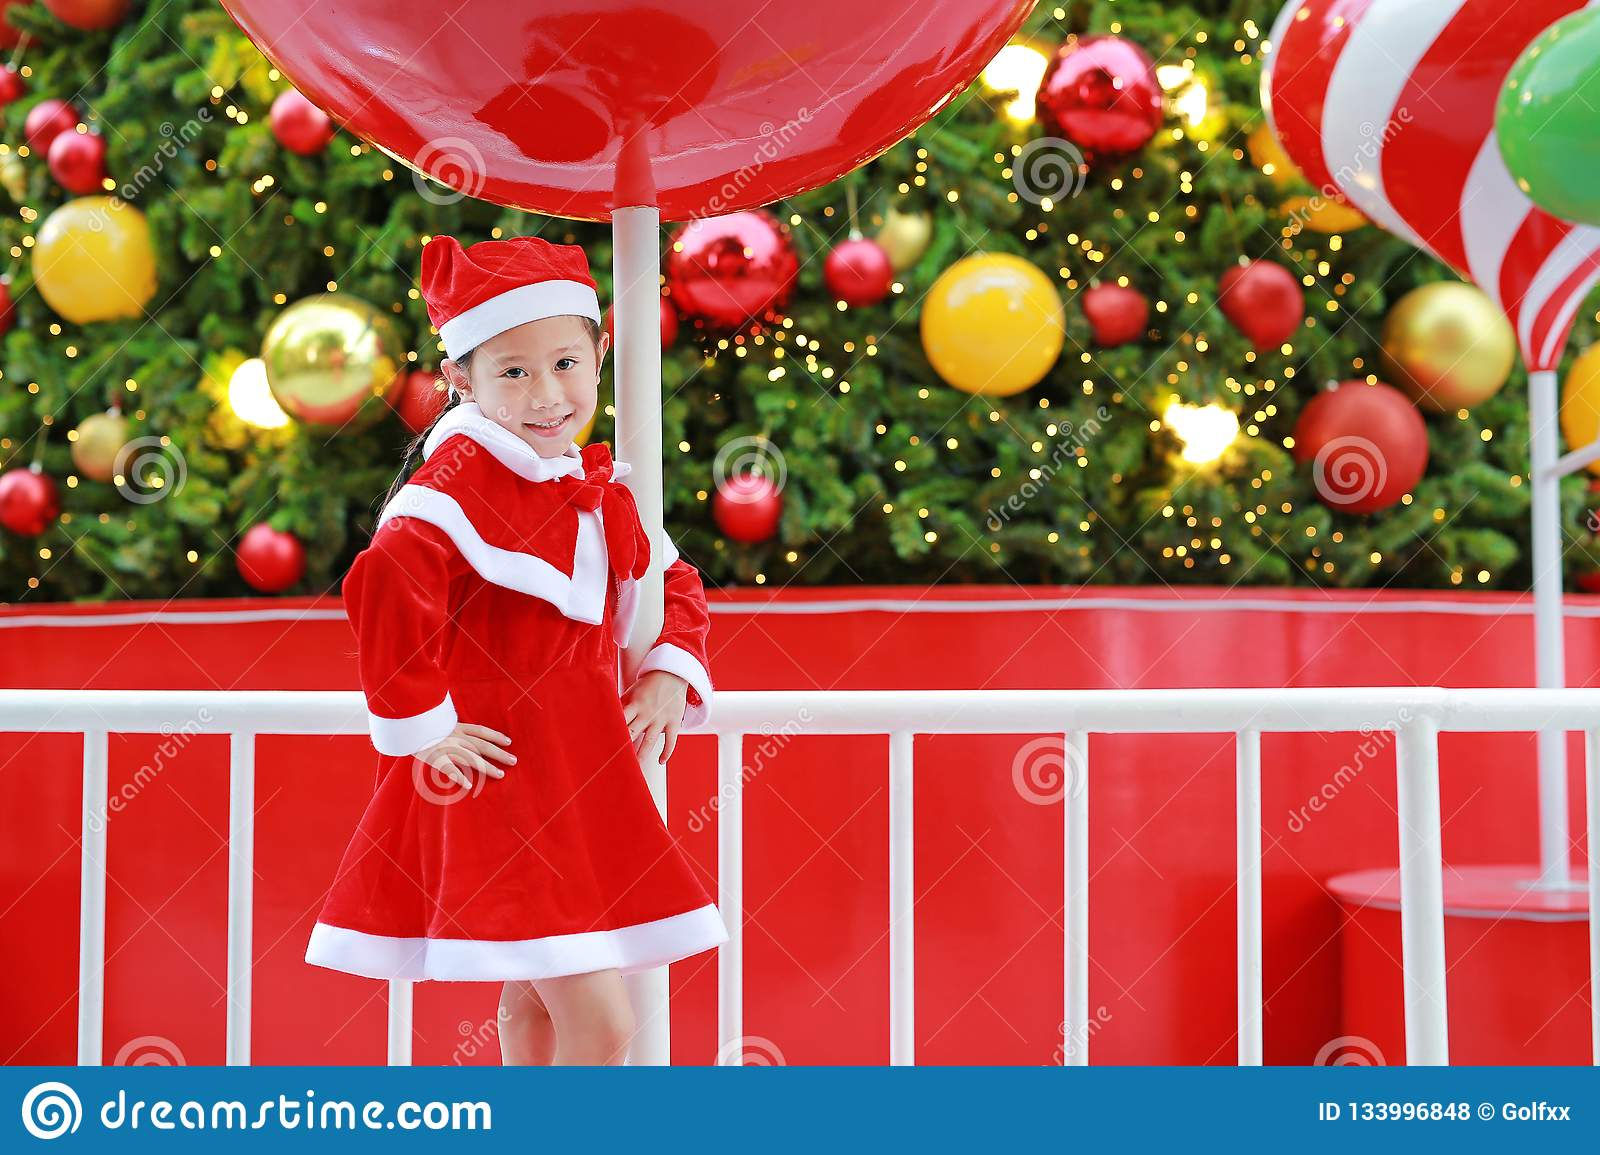 Smiling little kid girl in Santa costume with Christmas background. Merry Christmas and happy holidays